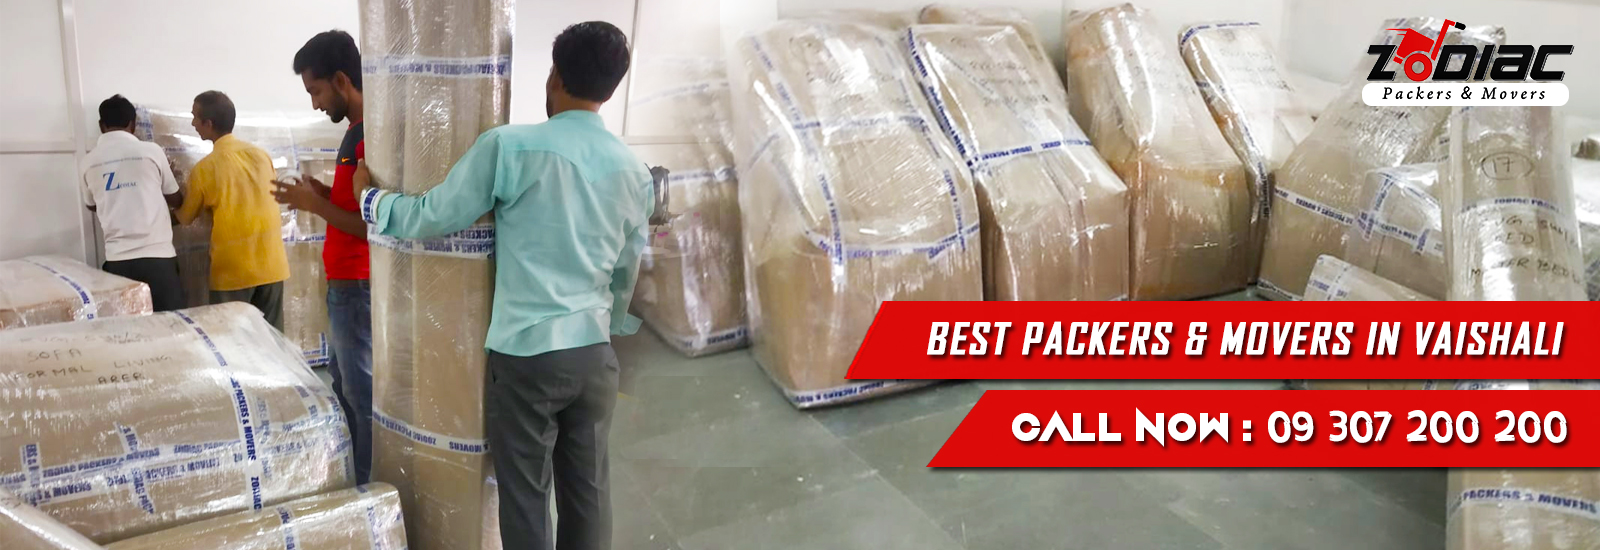 Packers and Movers in Vaishali